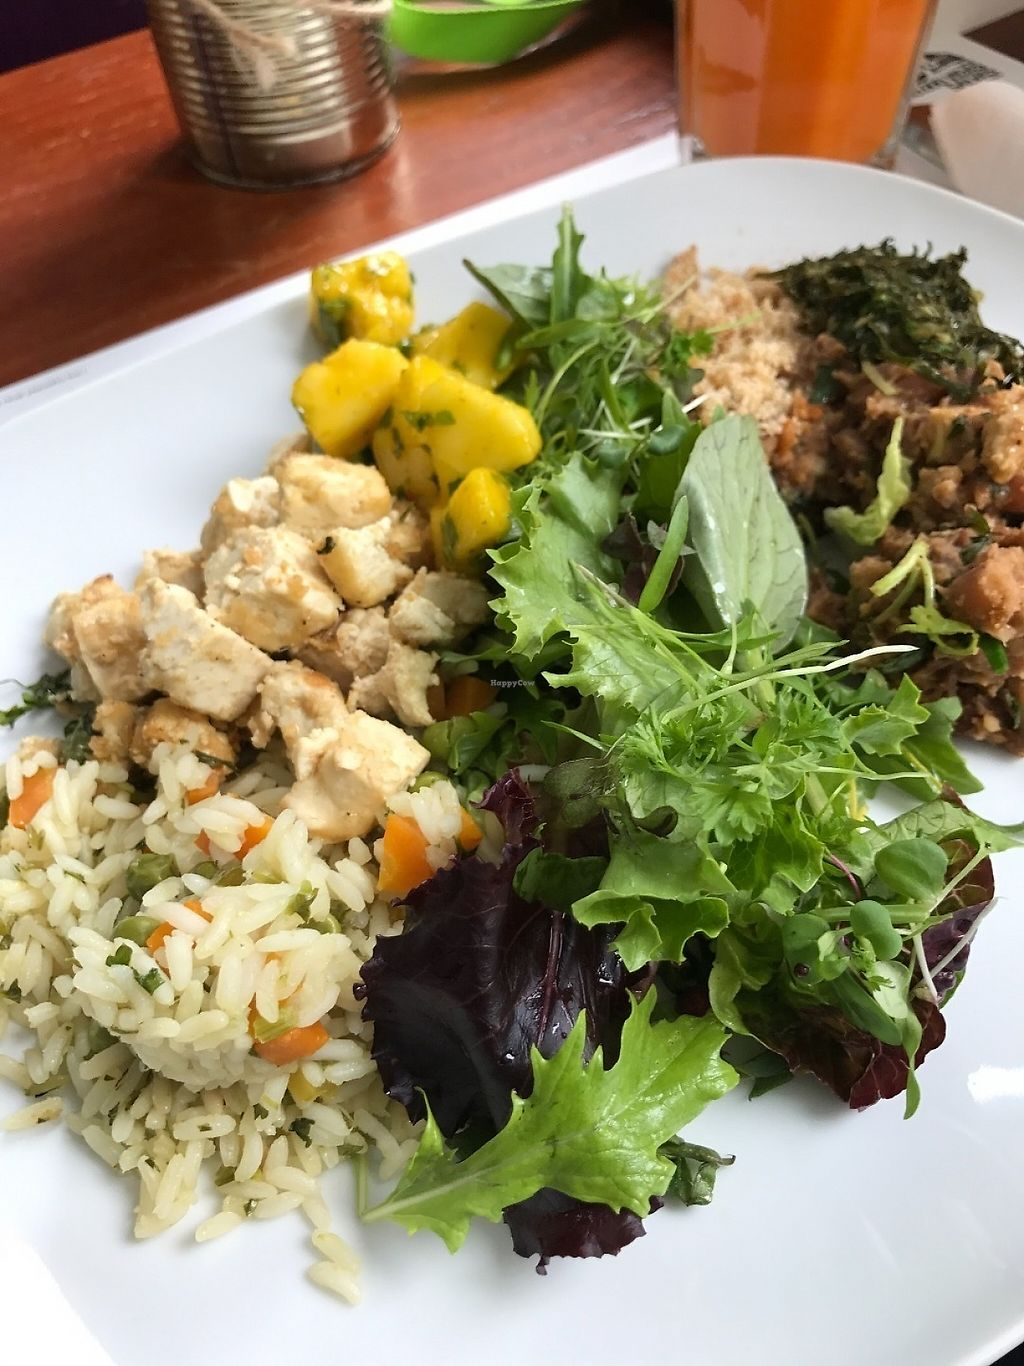 """Photo of Miss Saigon  by <a href=""""/members/profile/zubora"""">zubora</a> <br/>Two dish tasting dish, complete with fresh salad <br/> June 4, 2017  - <a href='/contact/abuse/image/17785/265731'>Report</a>"""